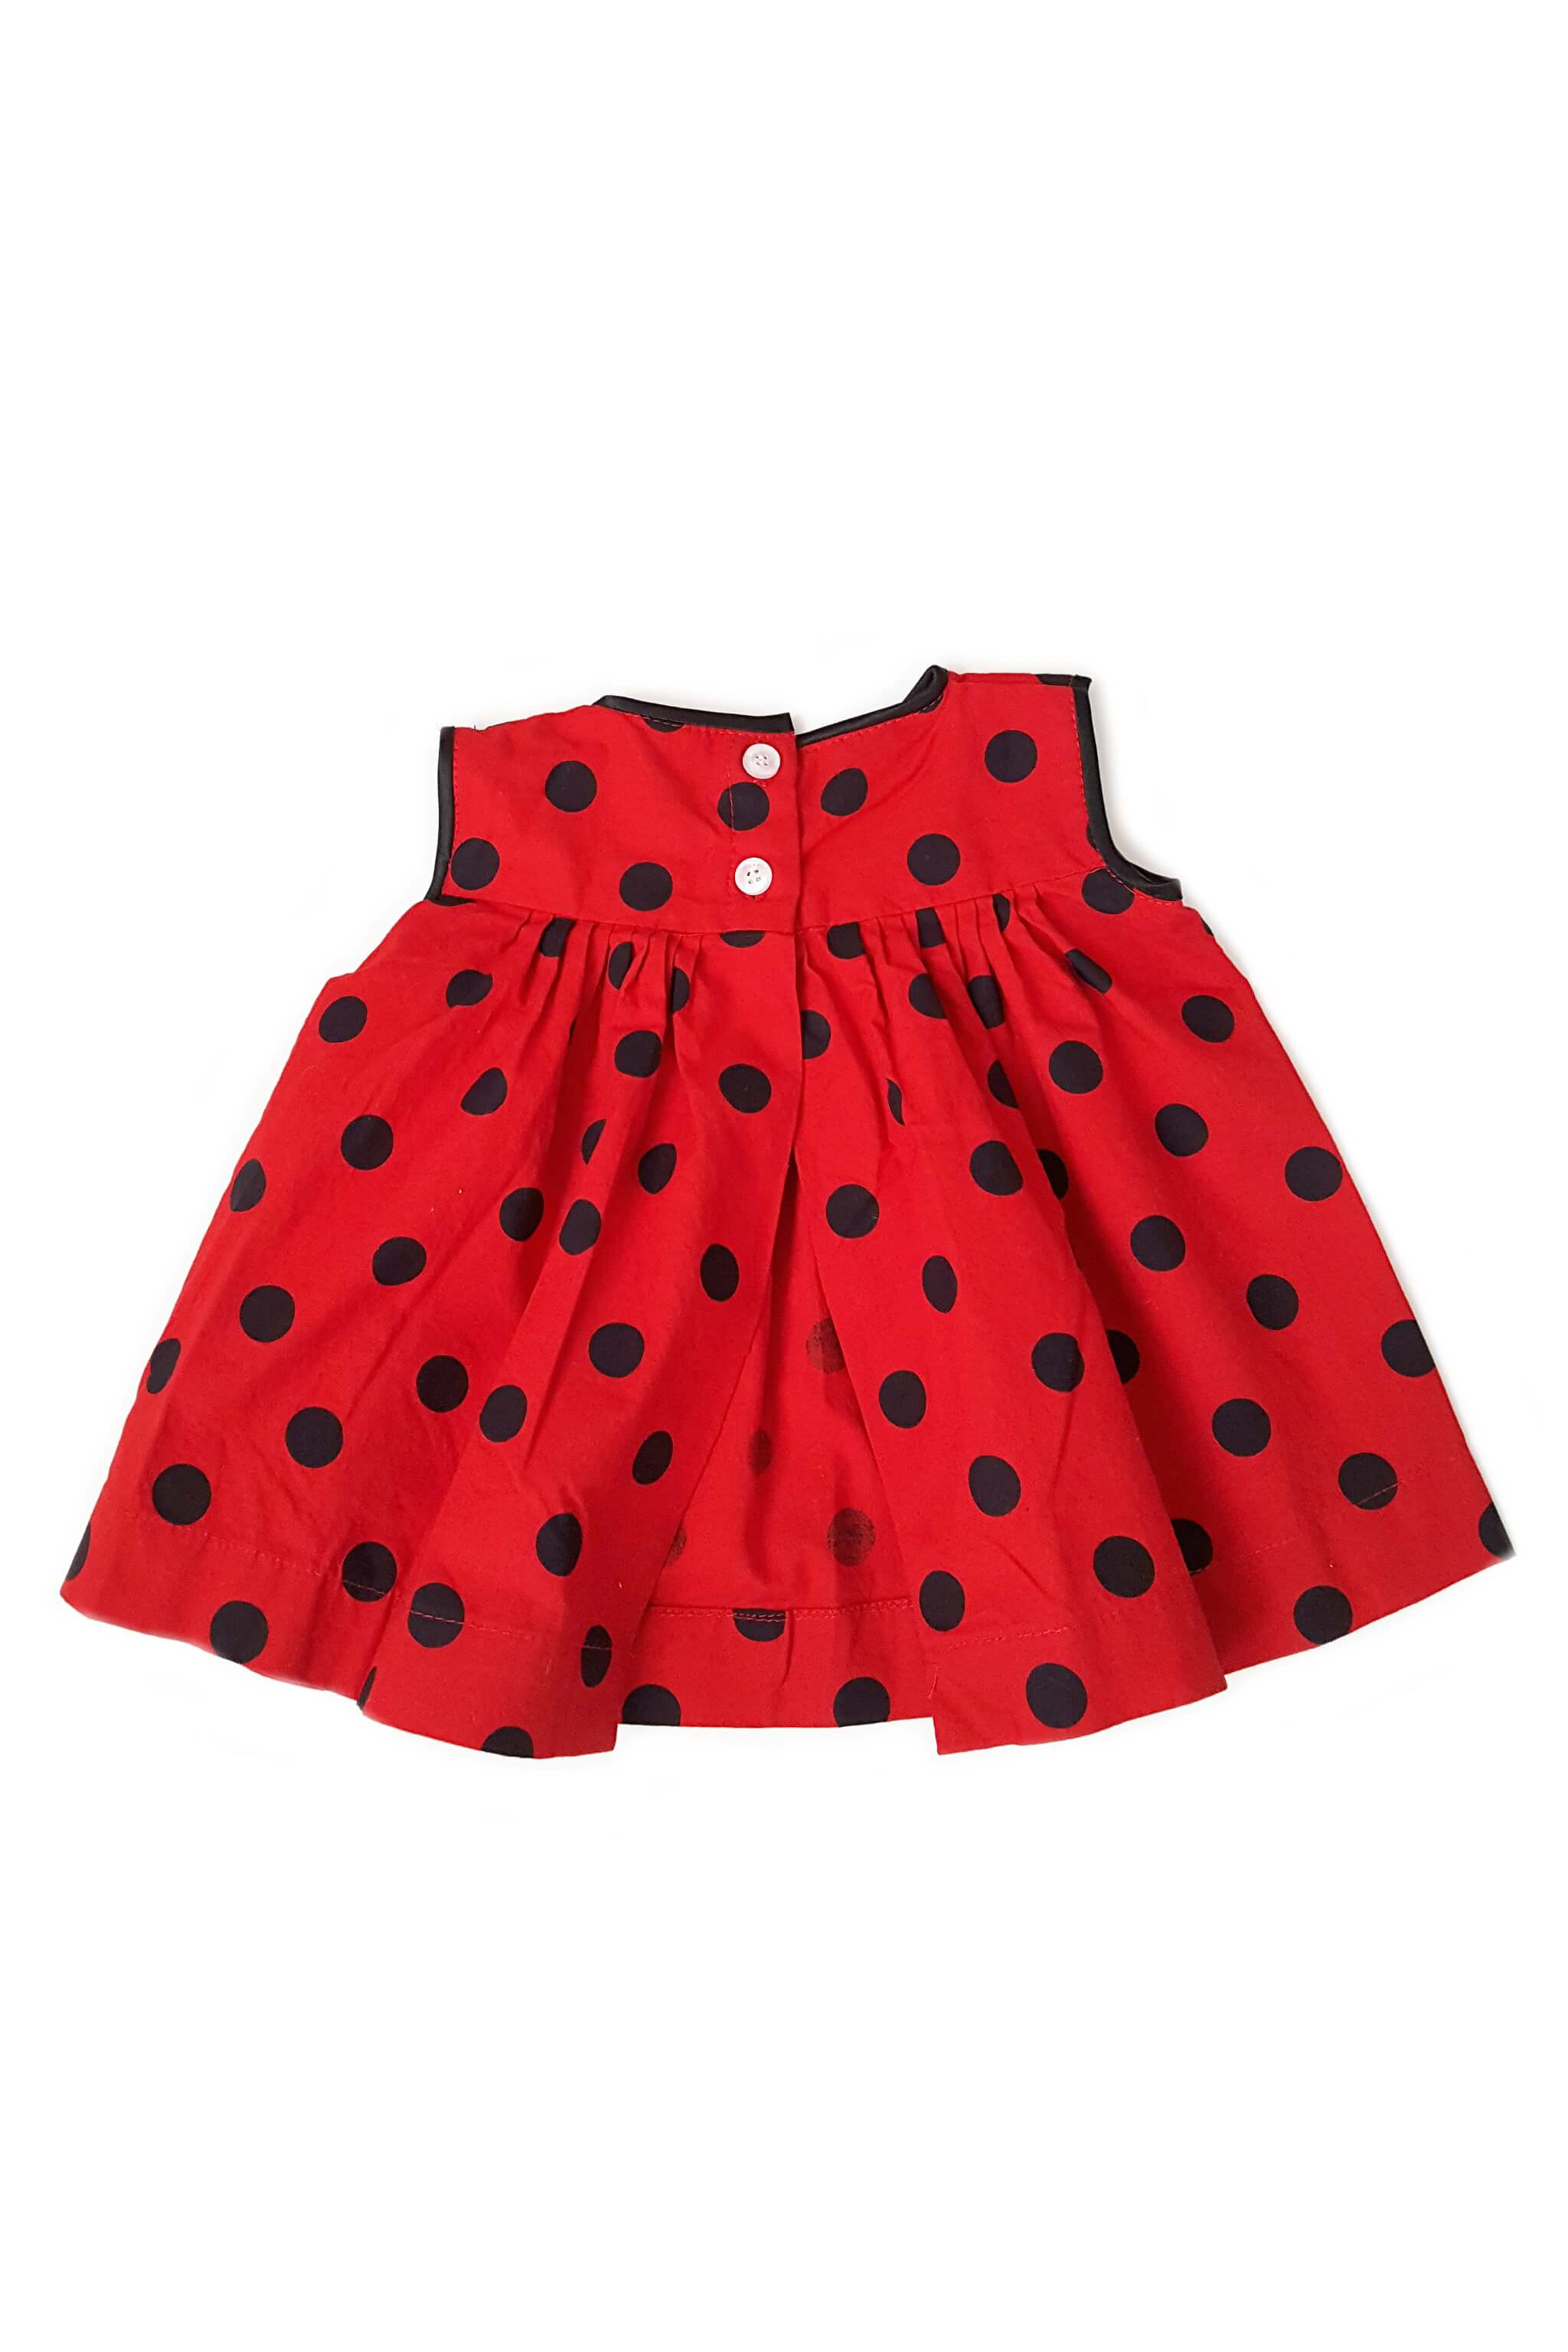 Back of Gwen dress from The Open Road with black and red polka dot print and button back opening